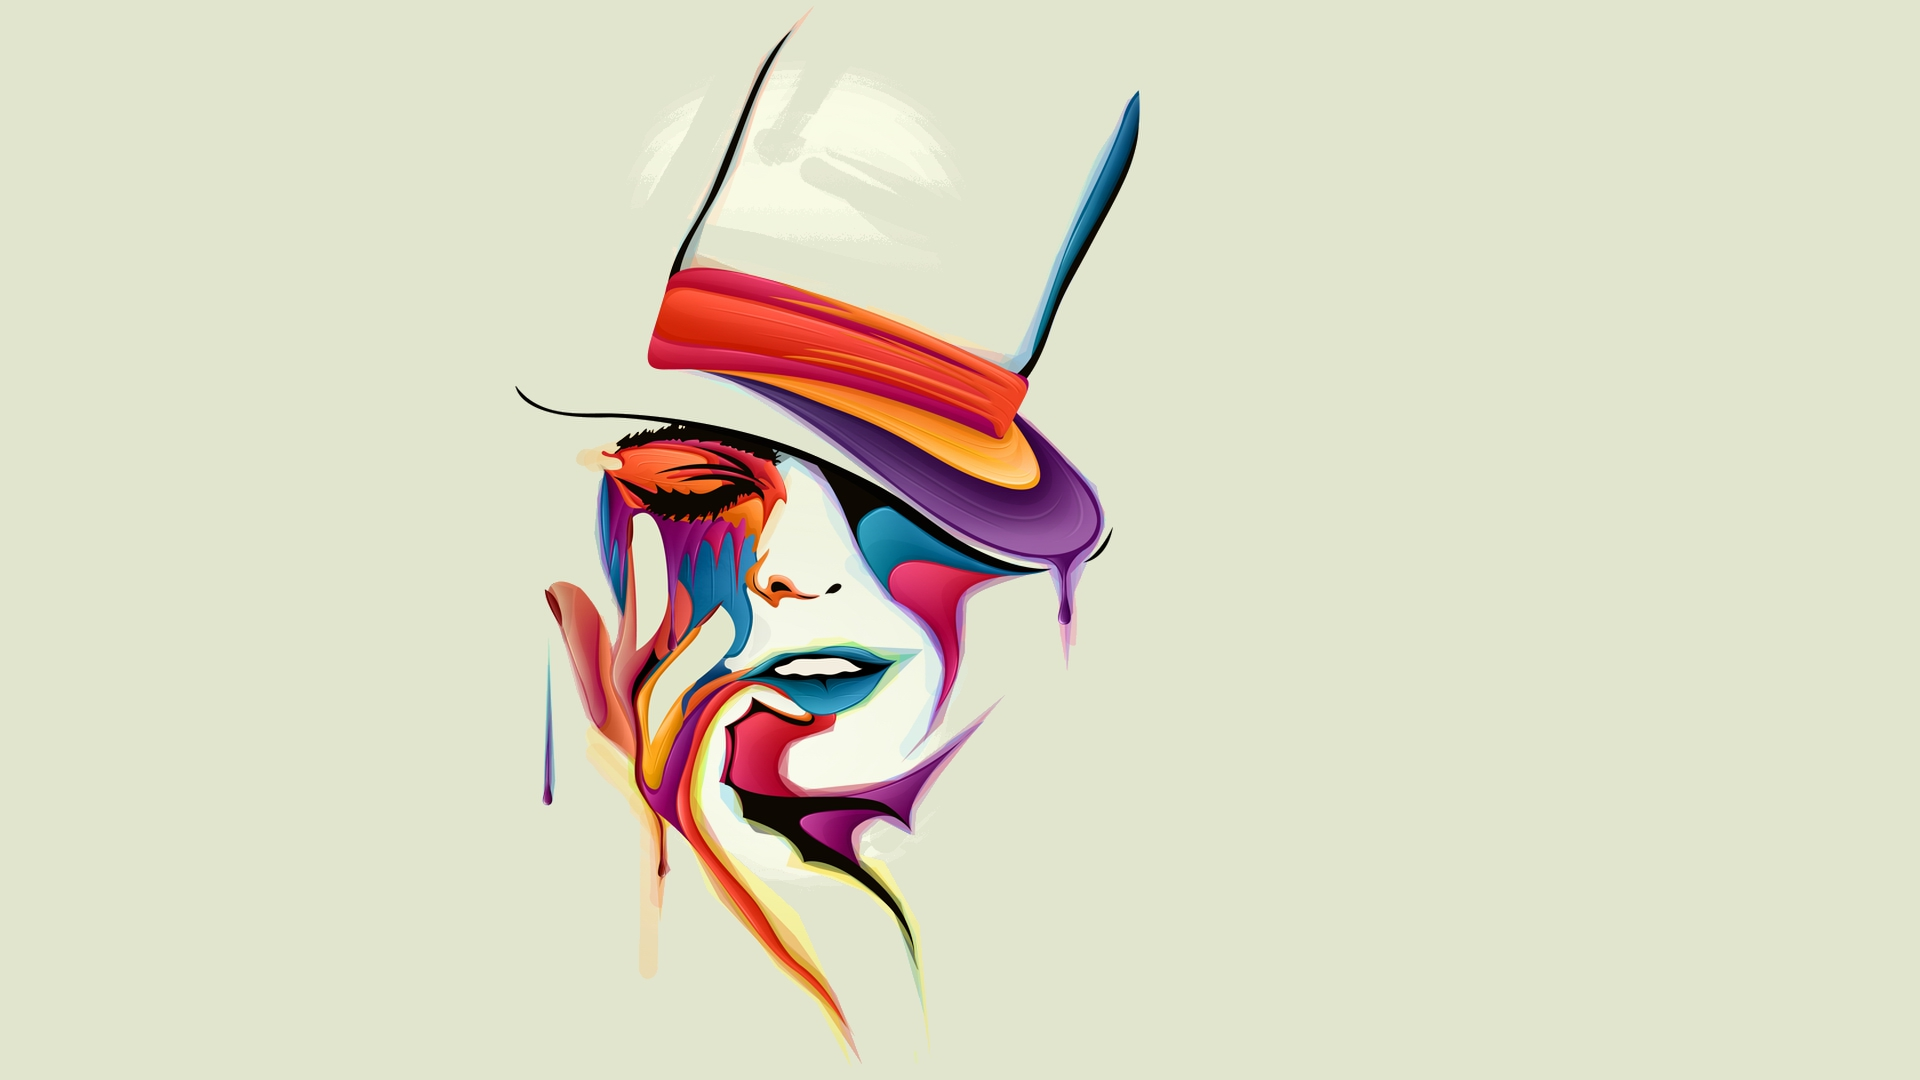 1920x1080 Download Wallpaper Face Drawing Vector Paints Color